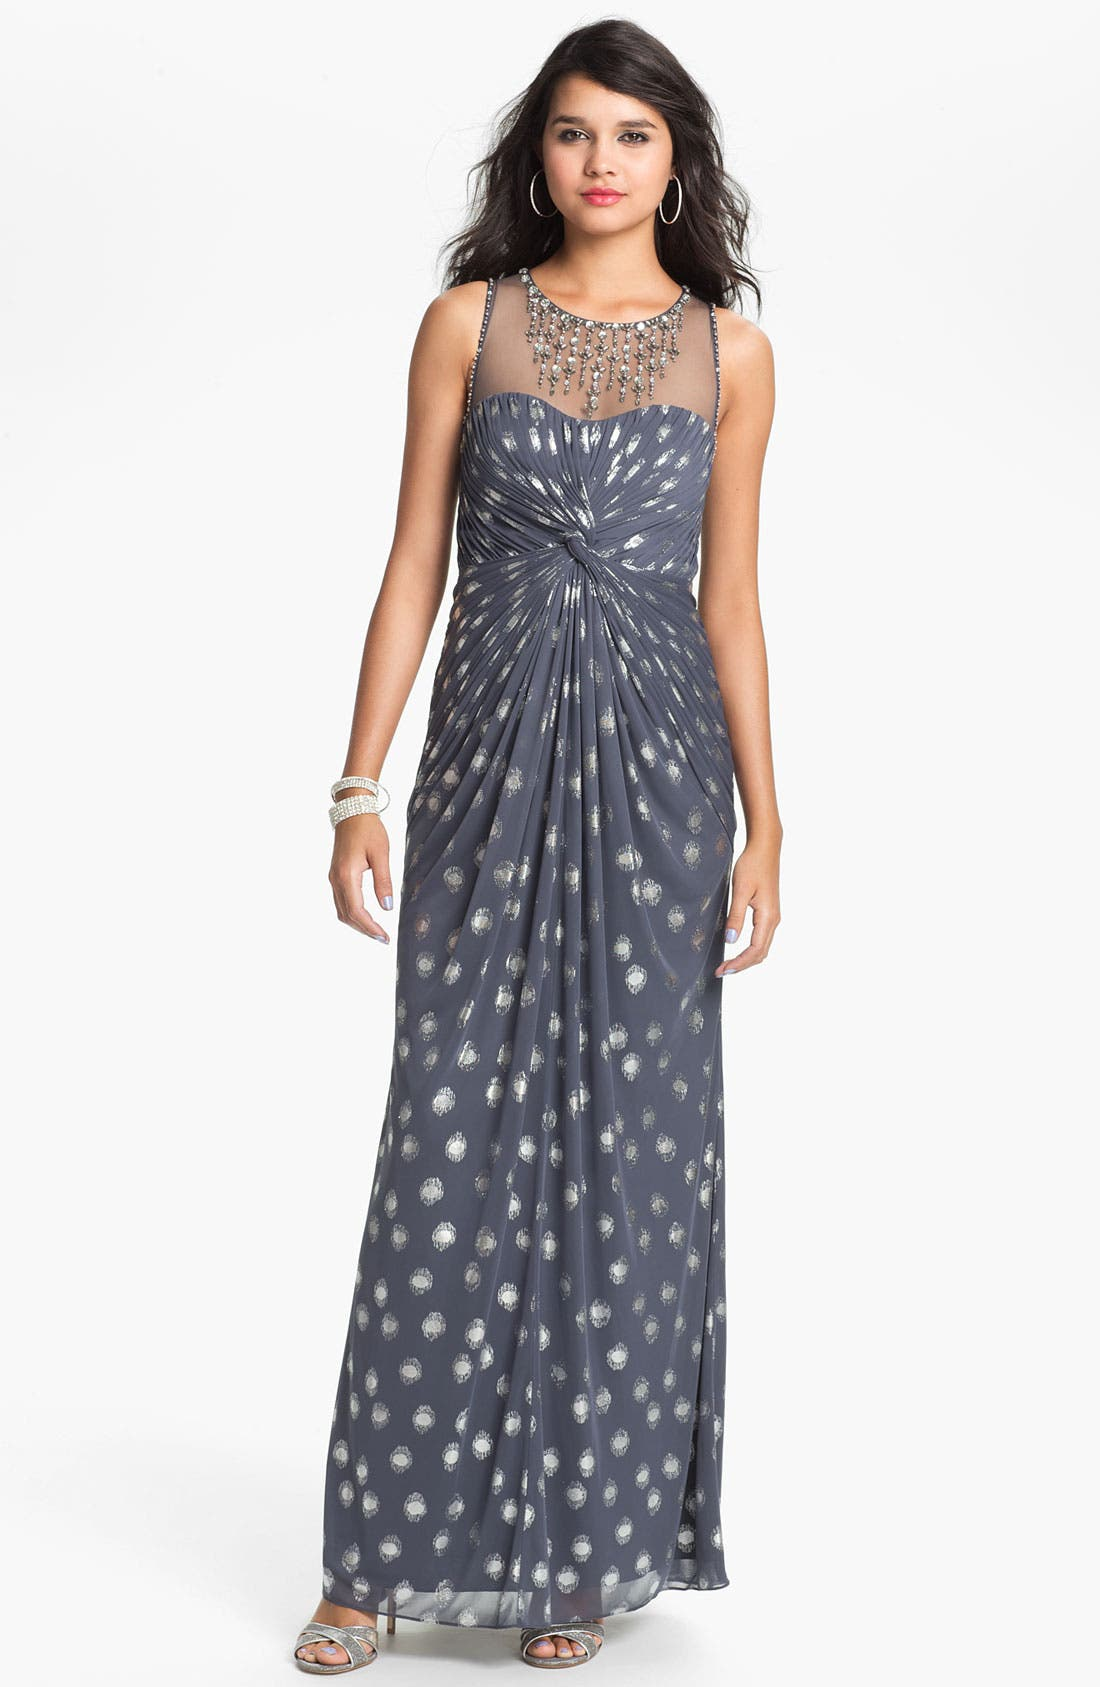 Main Image - Adrianna Papell Jeweled Illusion Yoke Mesh Gown